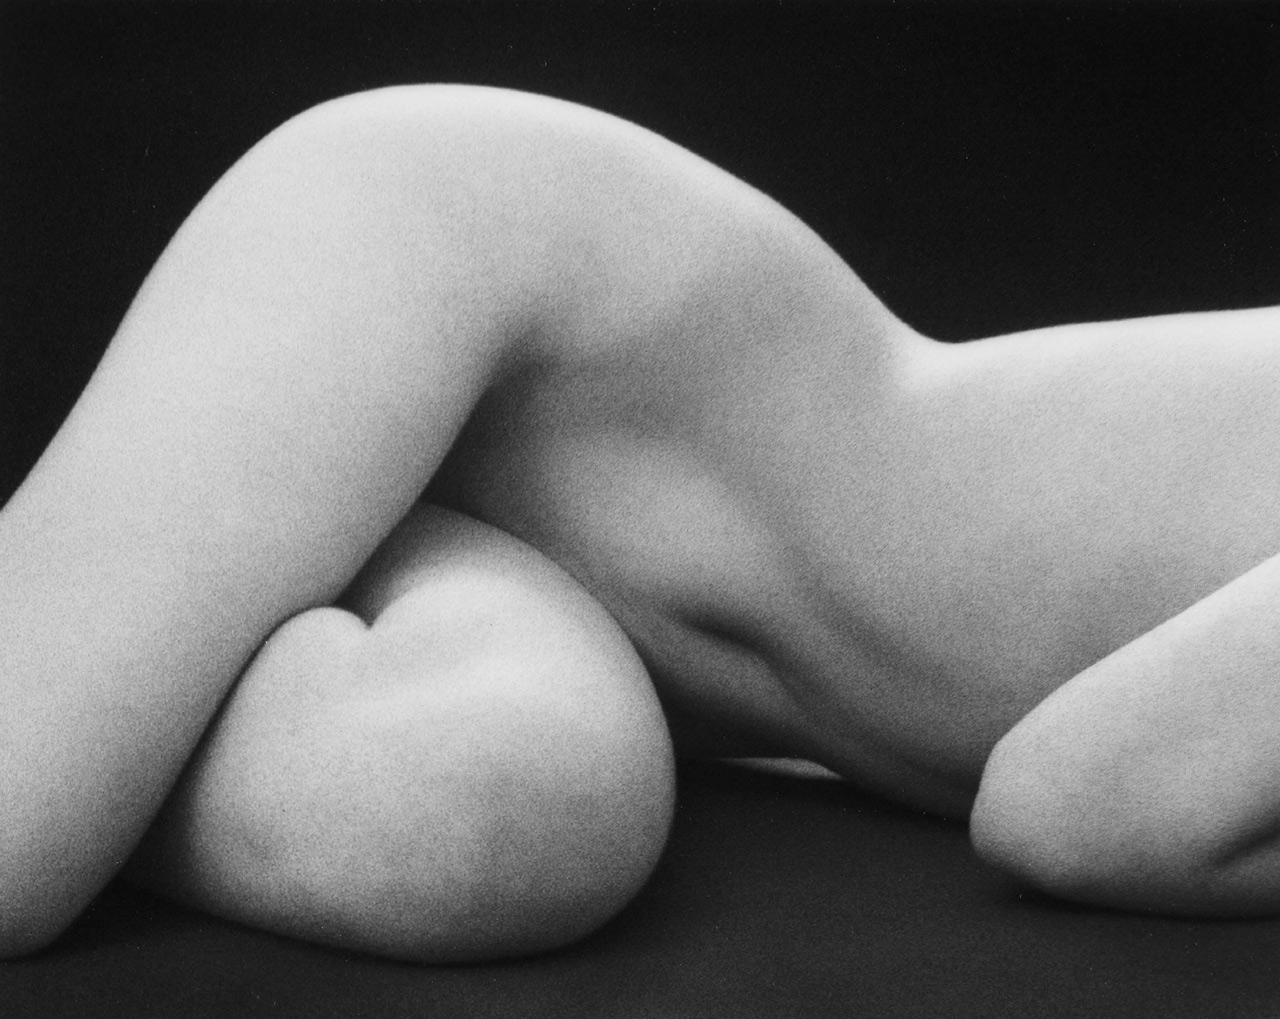 Inside edward weston's the flame of recognition